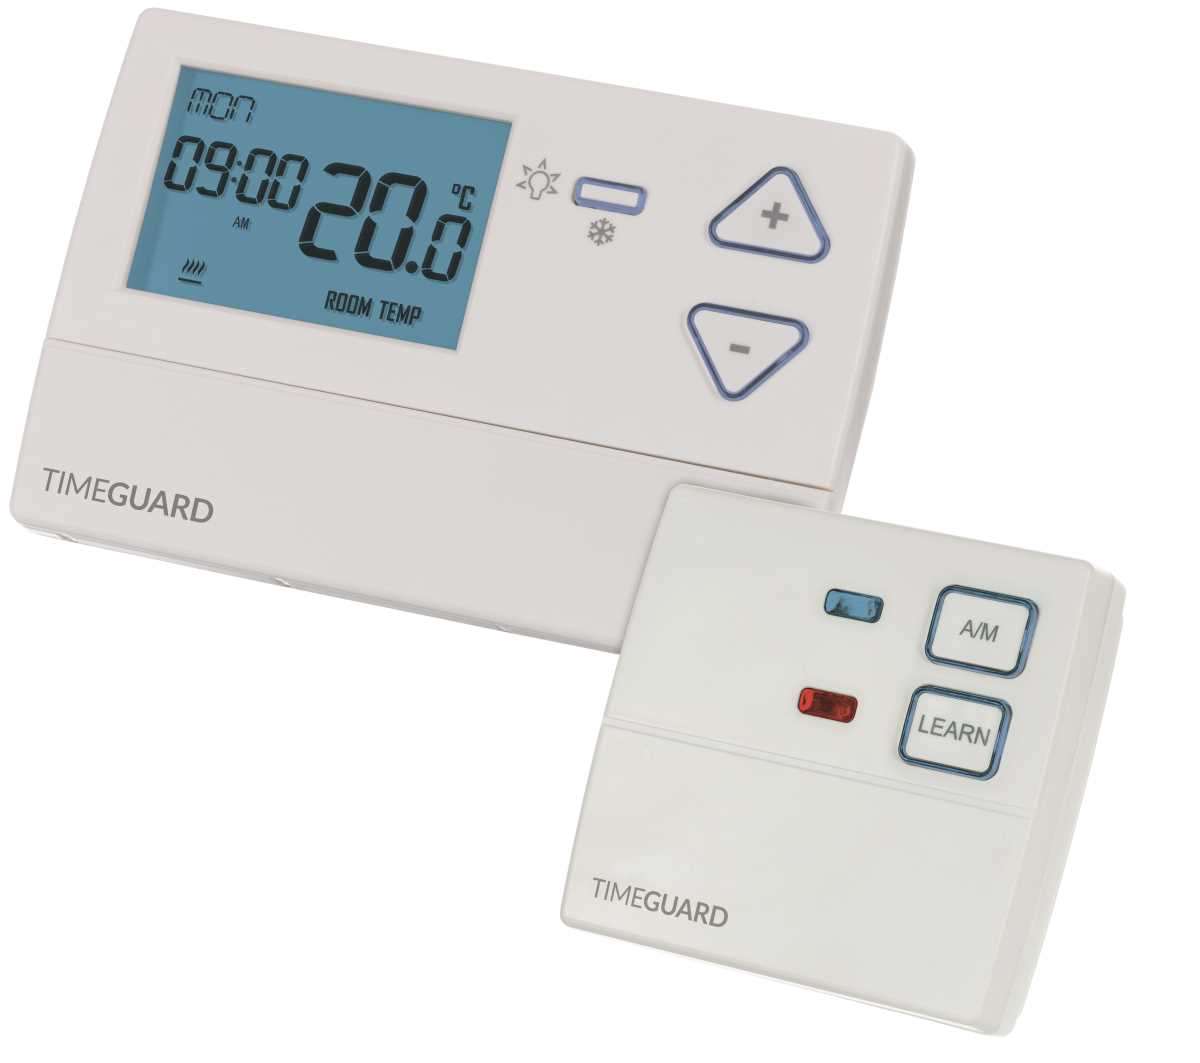 Timeguard TRT037N Wireless 7 Day Digital Programmable Room Thermostat